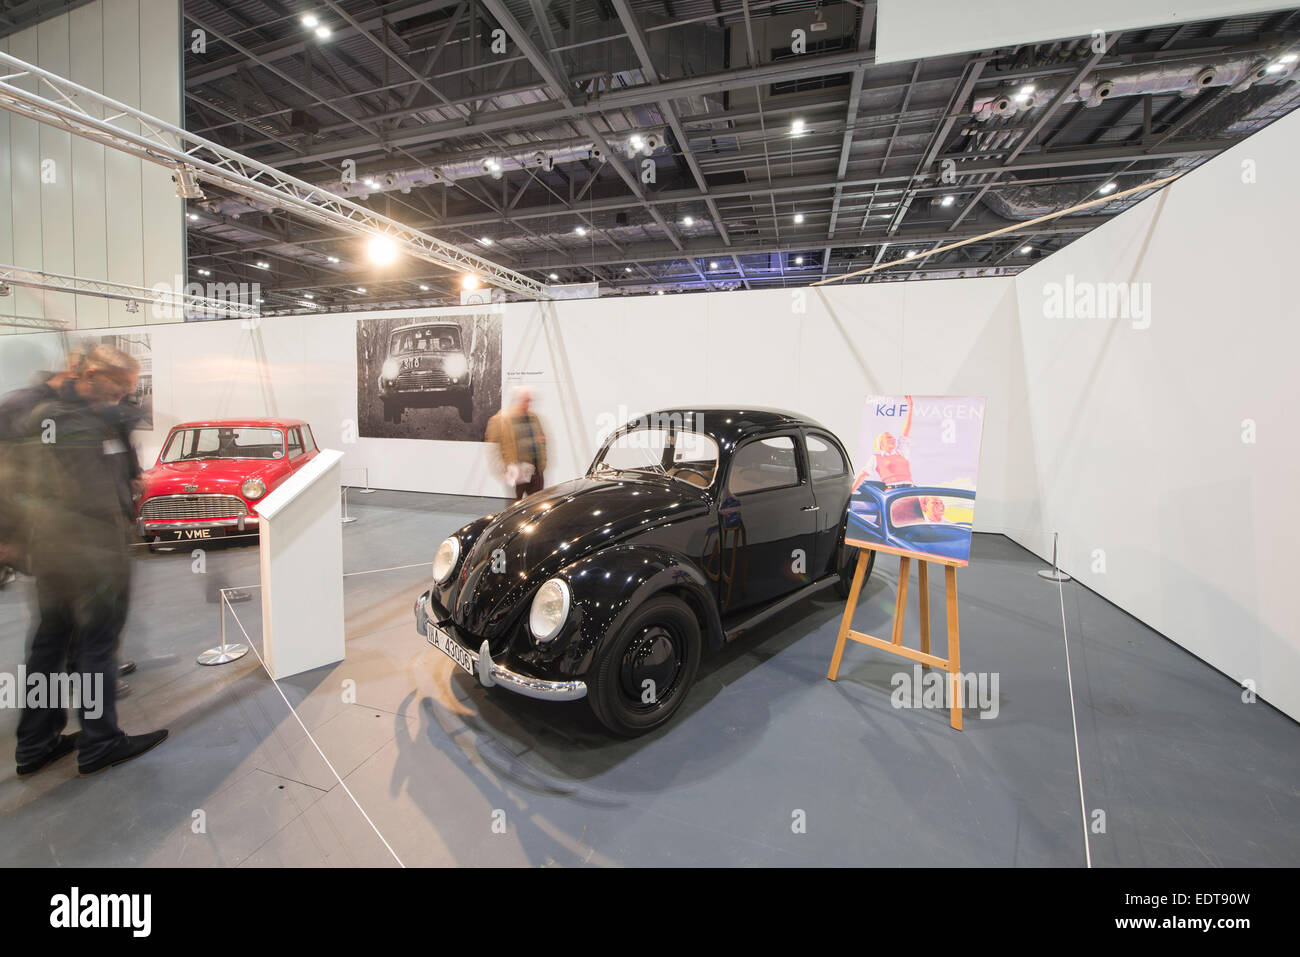 Excel, London's Docklands, UK. 9th January, 2015. James May's Hall of Obviousness at The London Classic Car Show - Stock Image